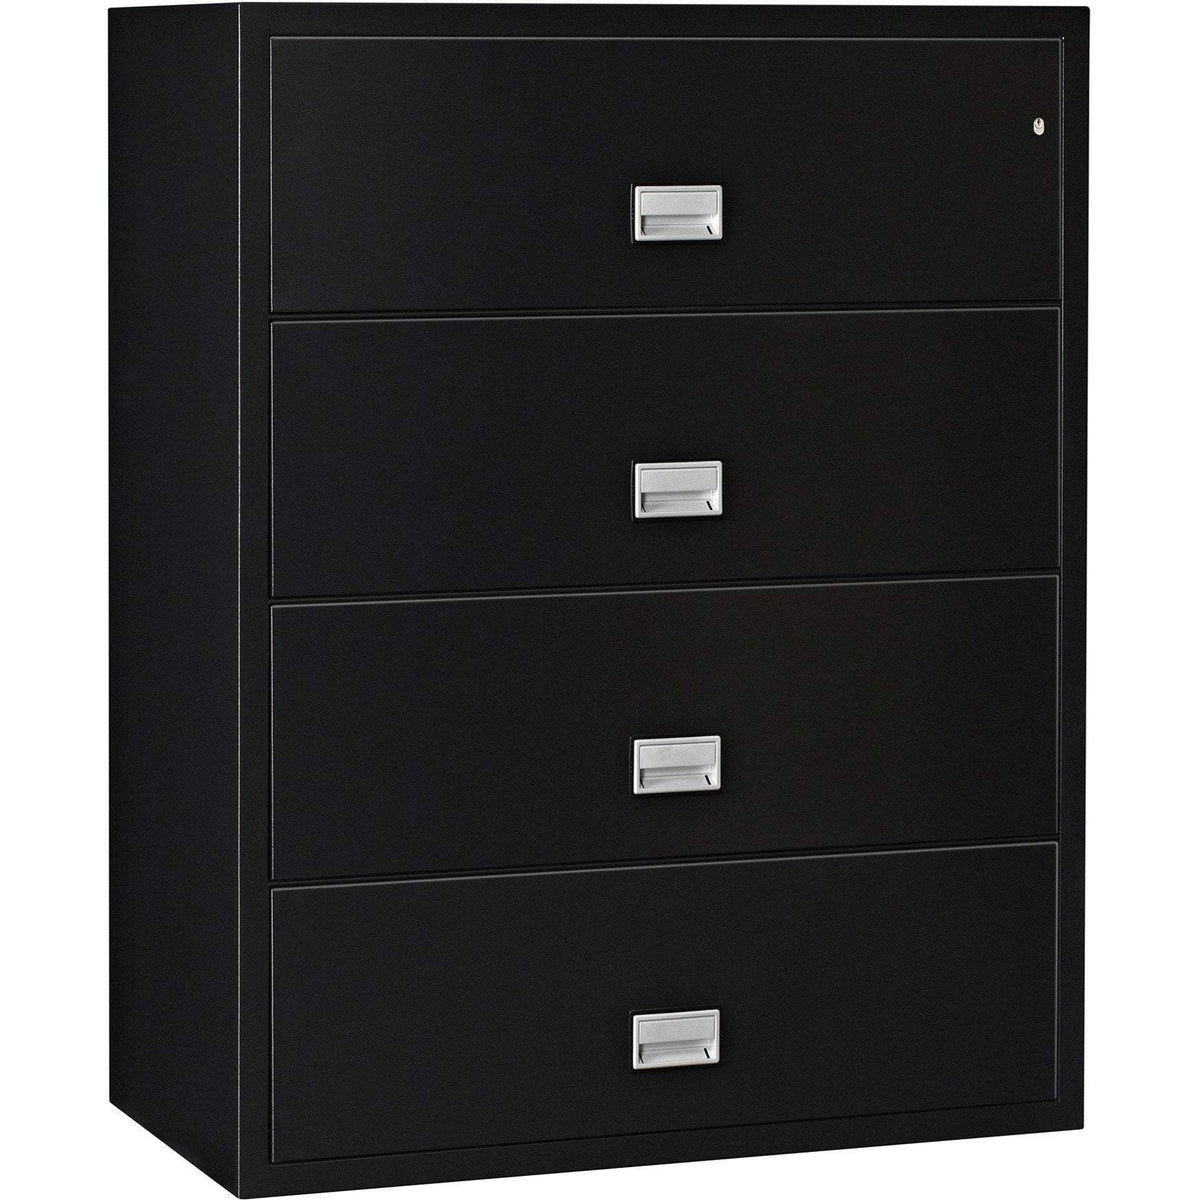 Phoenix LAT4W44 Lateral 44 inch 4-Drawer Fireproof File Cabinet Armadillo Safe and Vault